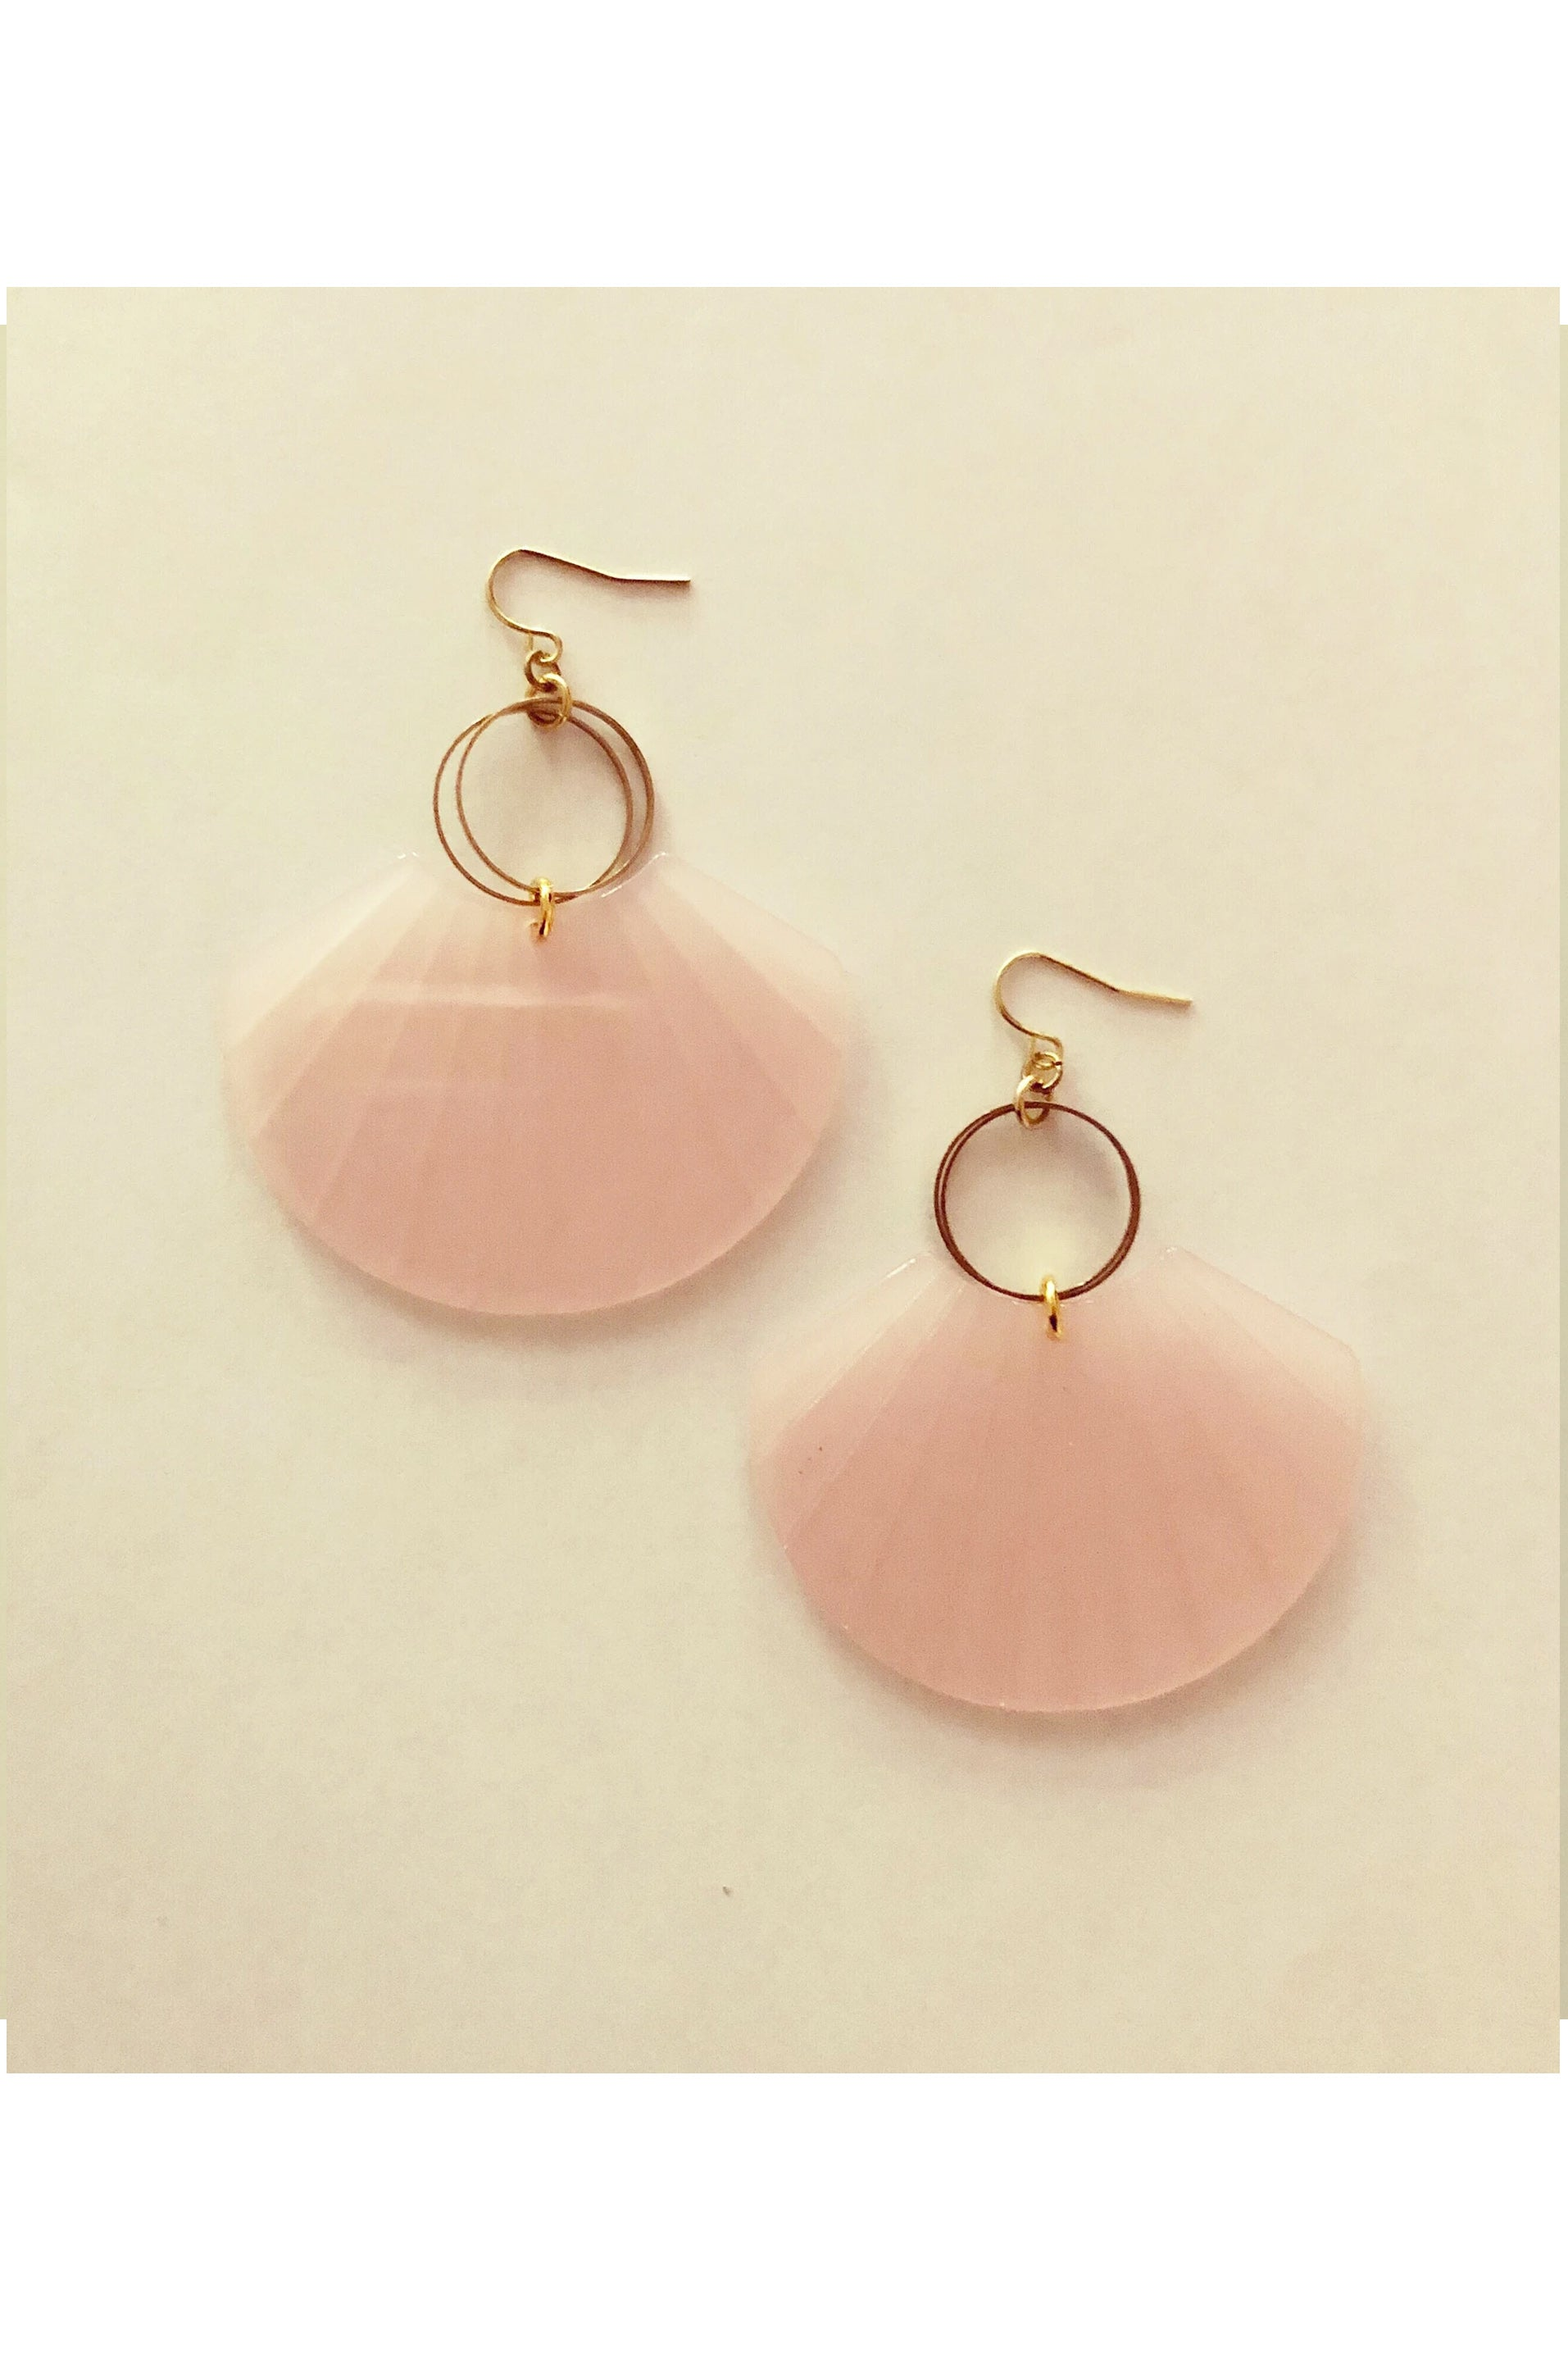 Buelle earrings by Darlings of Denmark; translucent pink; acryclic and raw brass; shell shape hanging off of two slim loops; flat lay